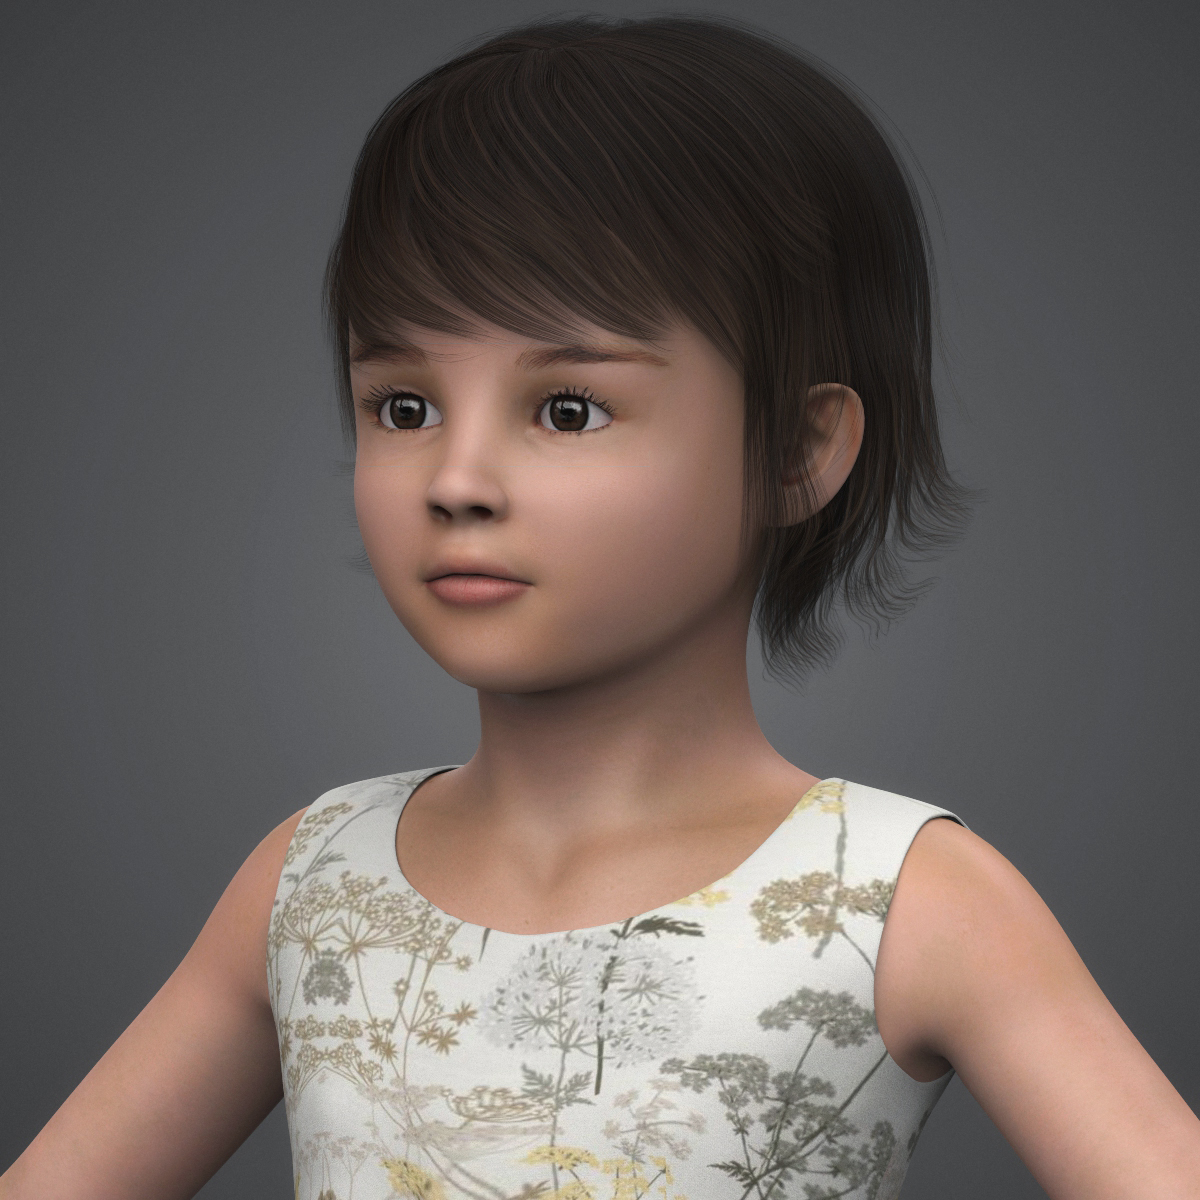 beautiful child girl 3d model max fbx c4d ma mb texture obj 252390